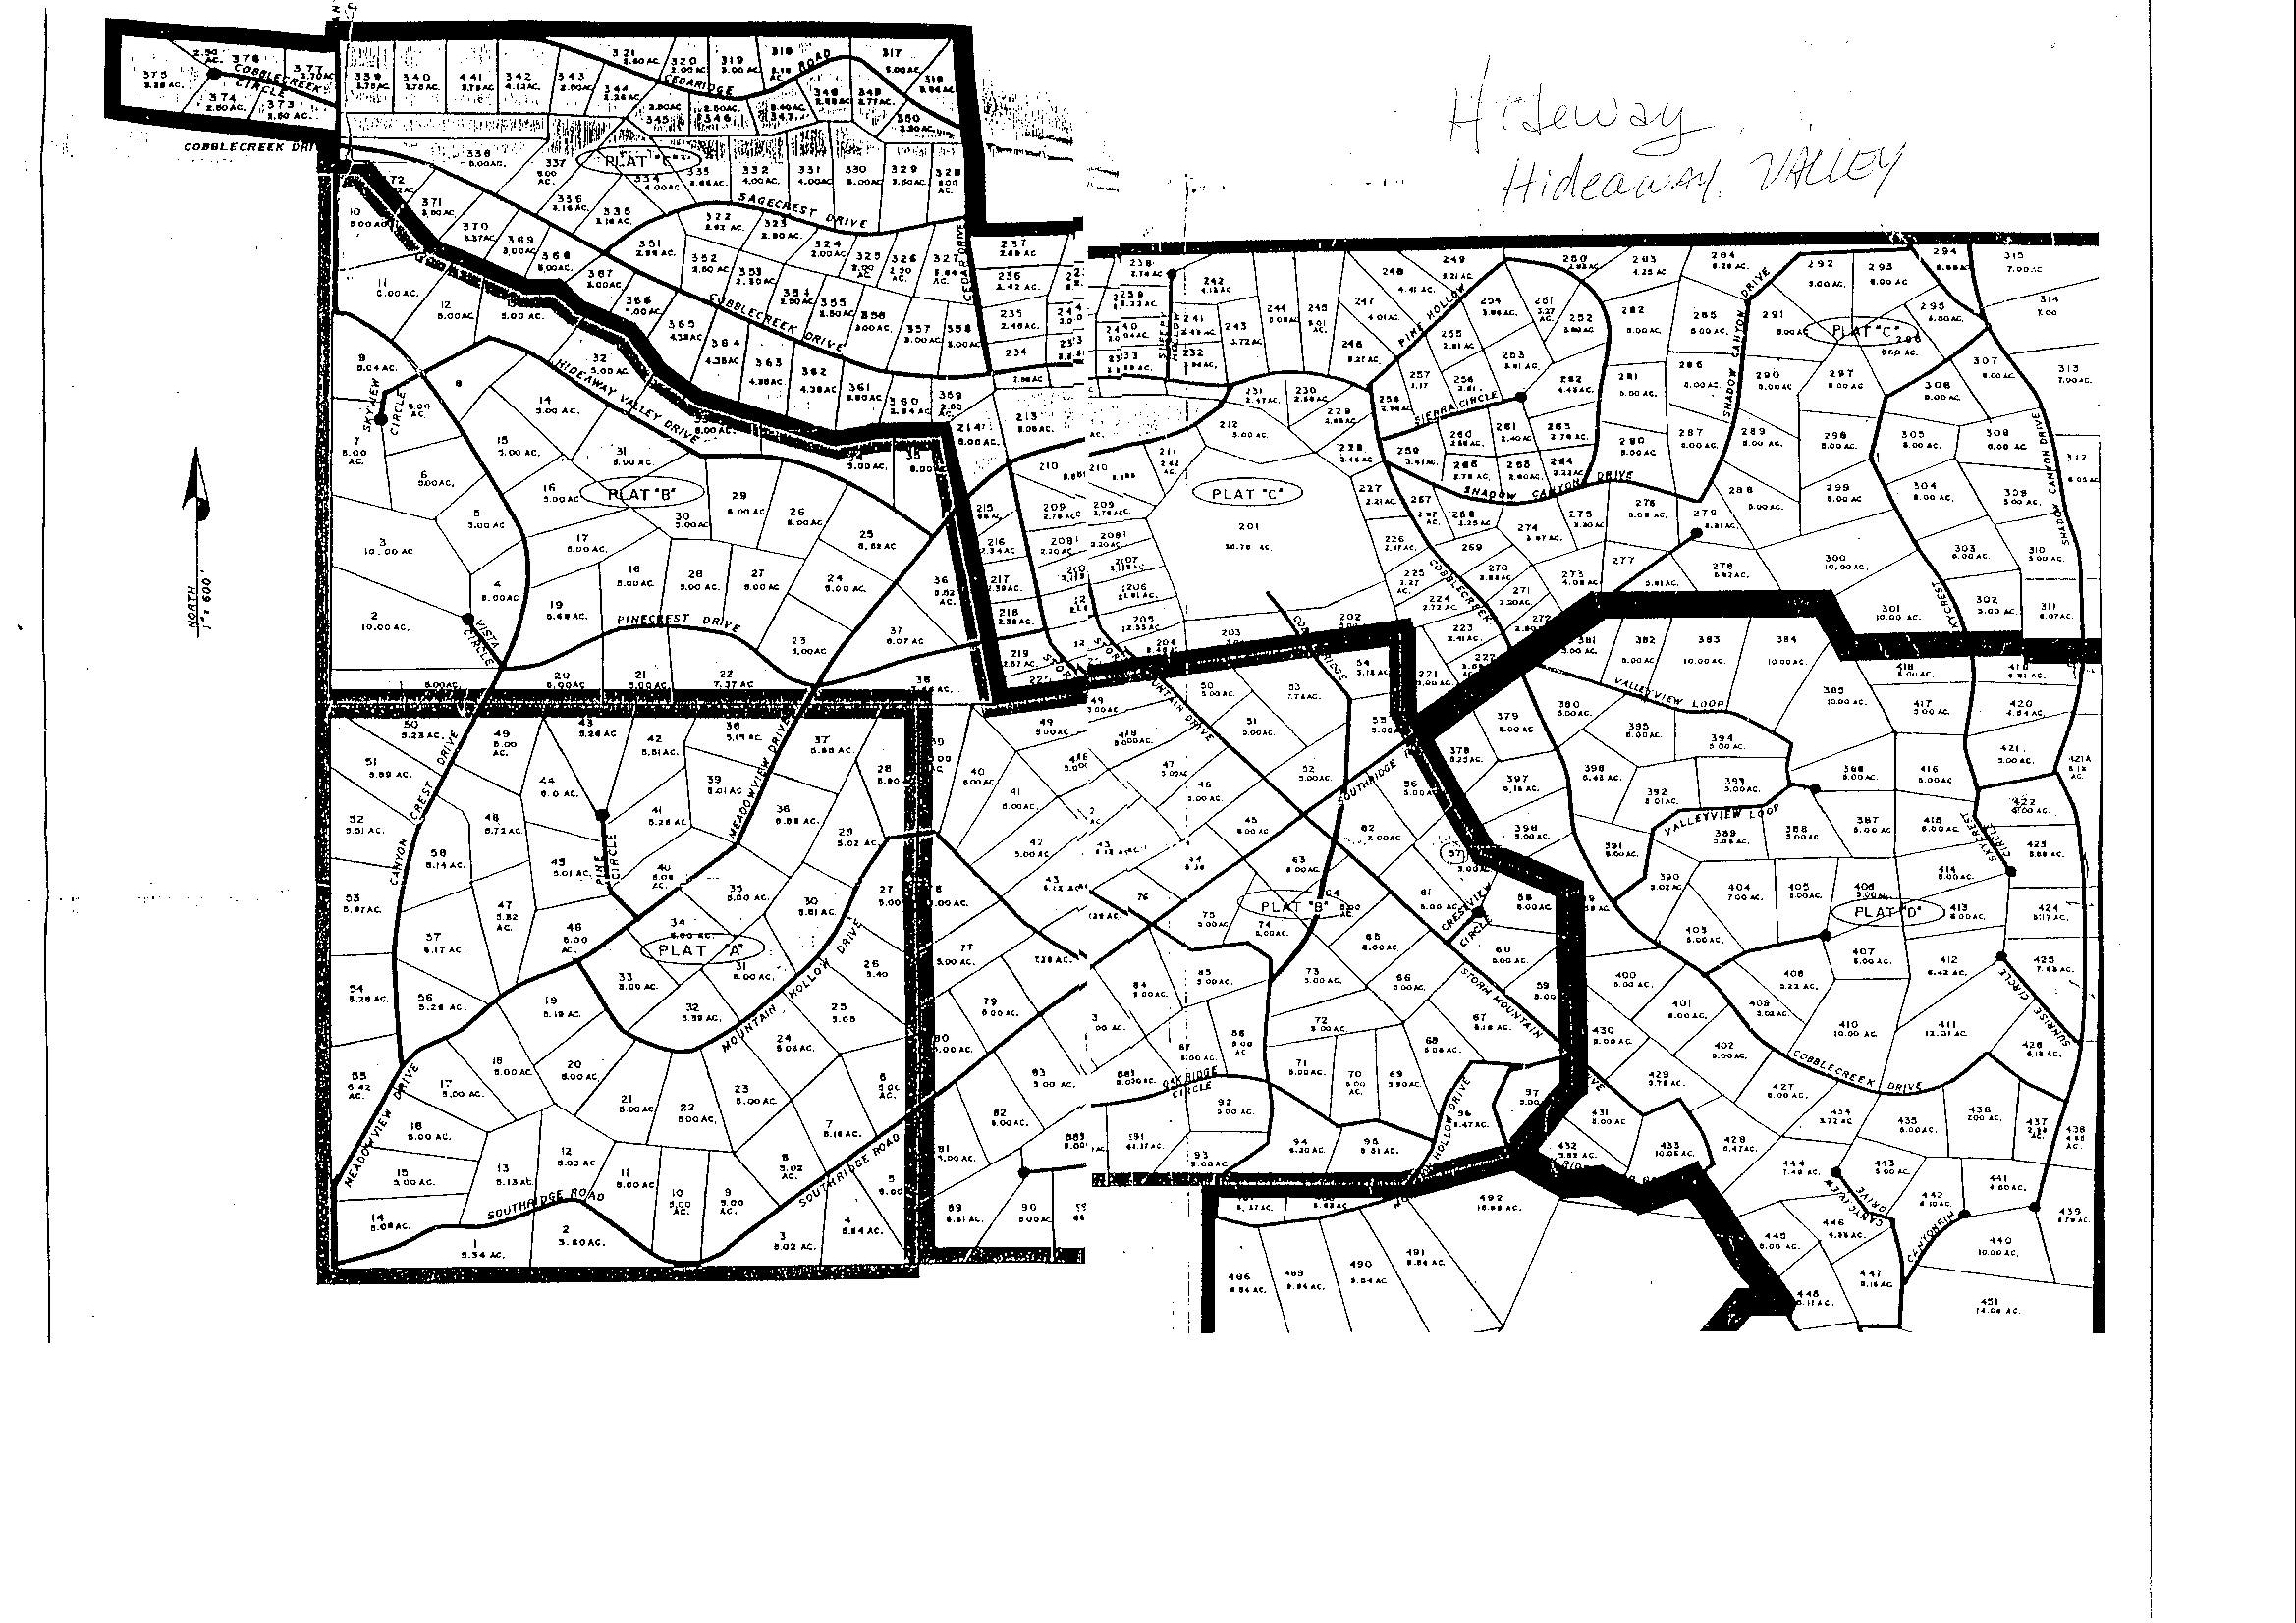 Sanpete County Utah Map.Hideaway Valley Sanpete Co